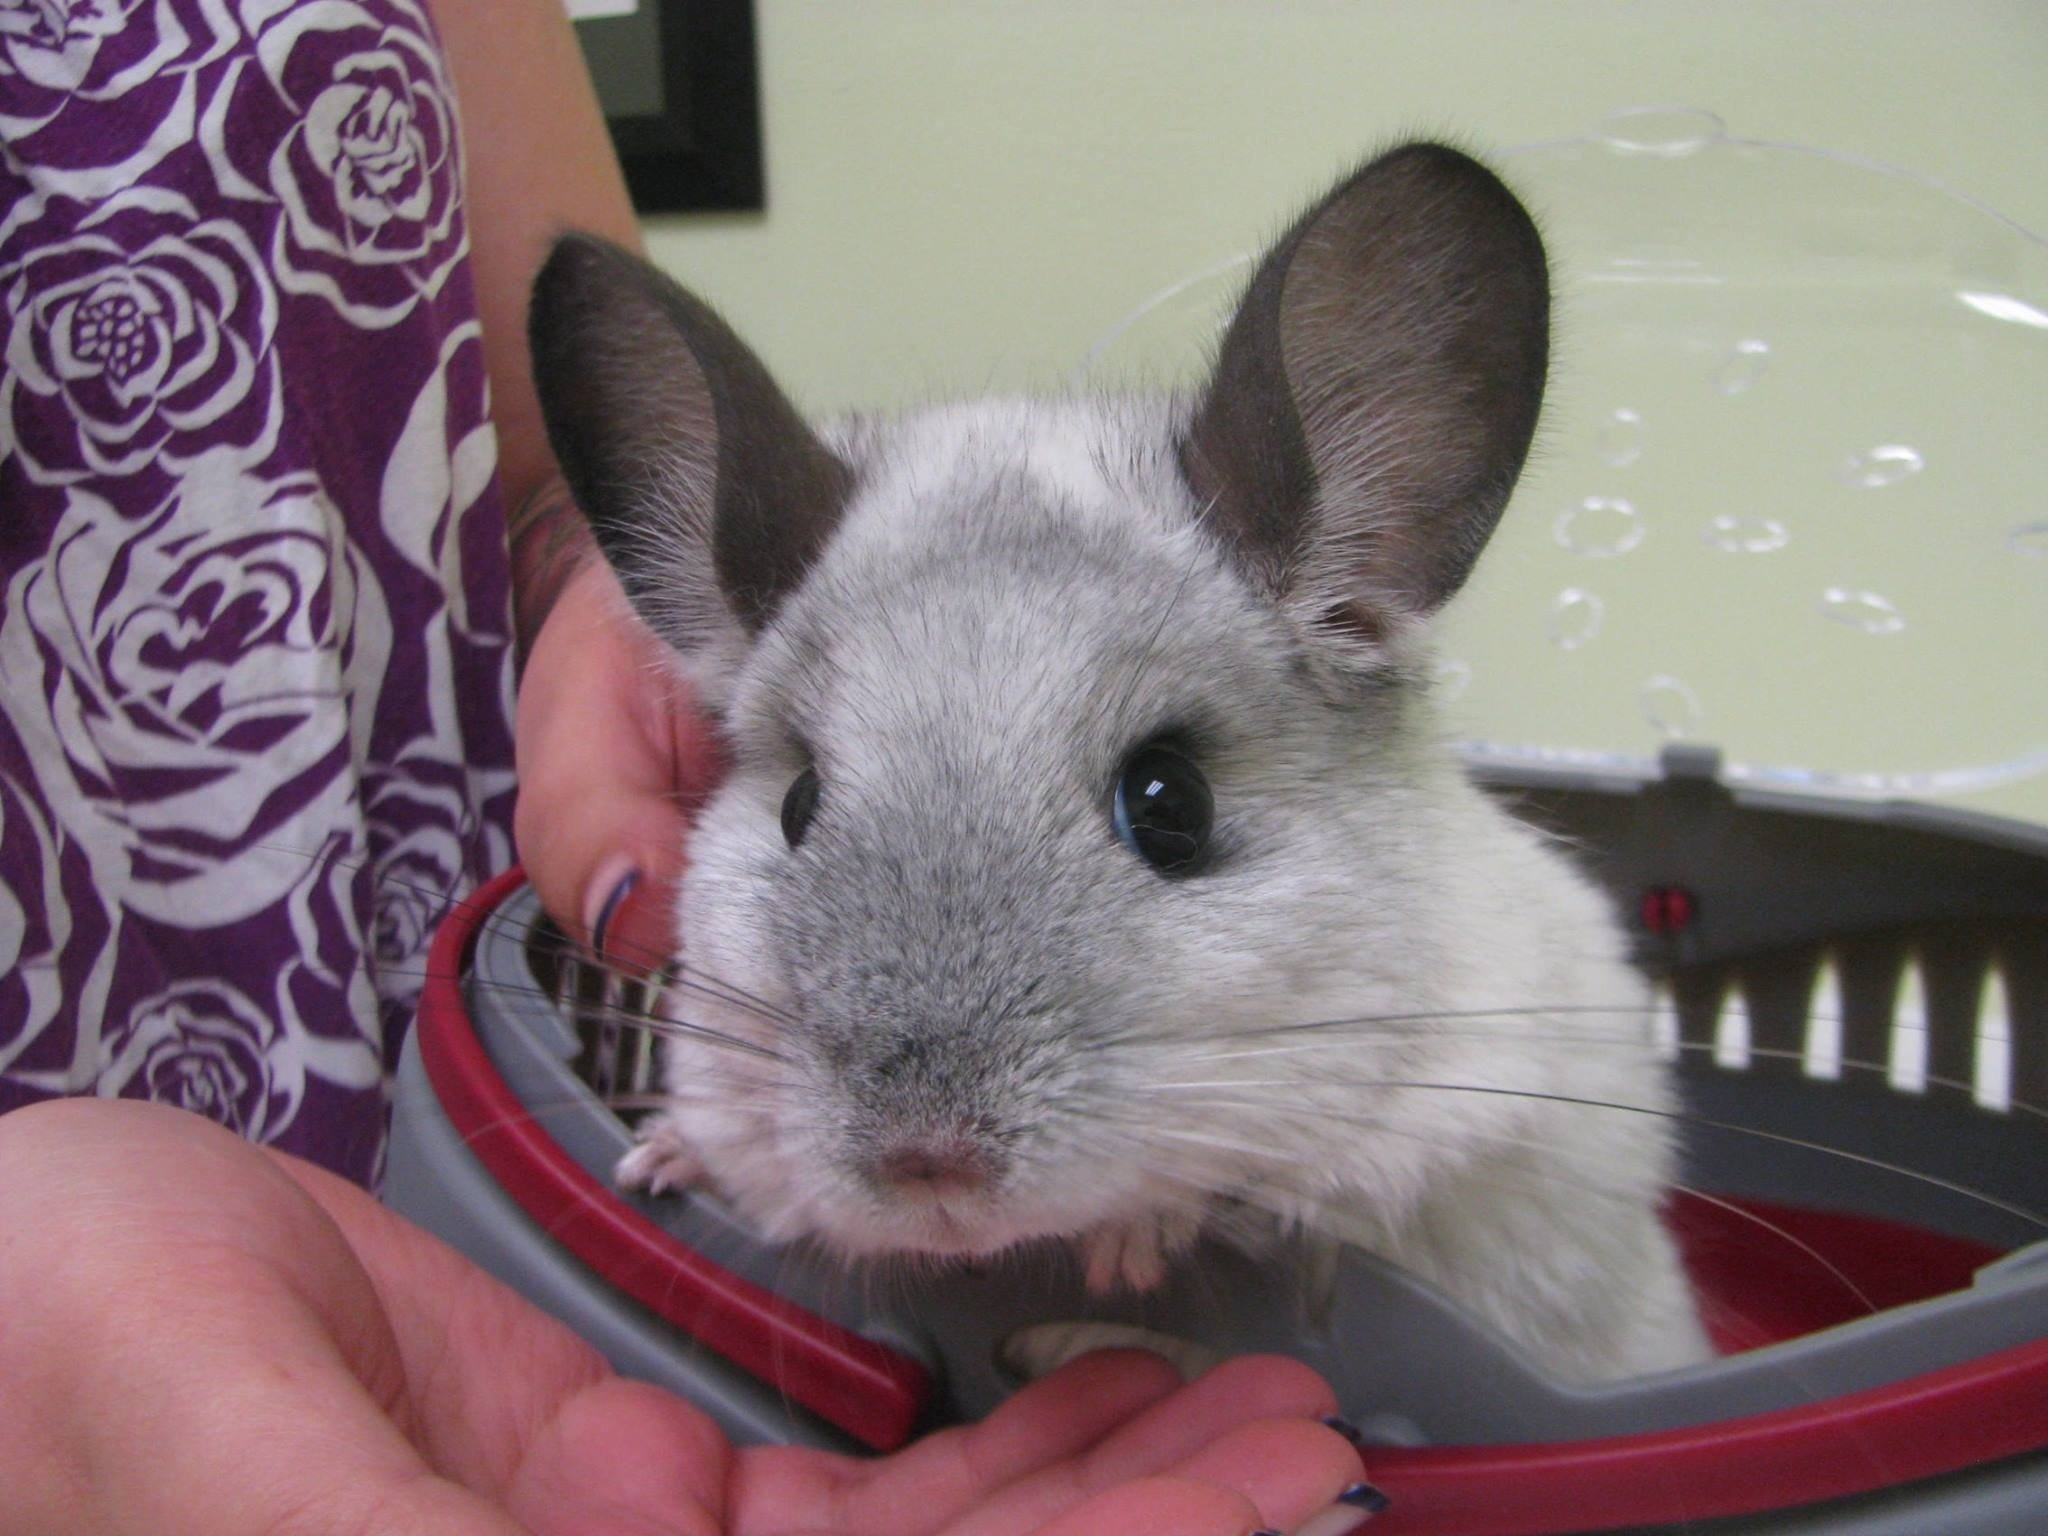 Chinchilla close-up